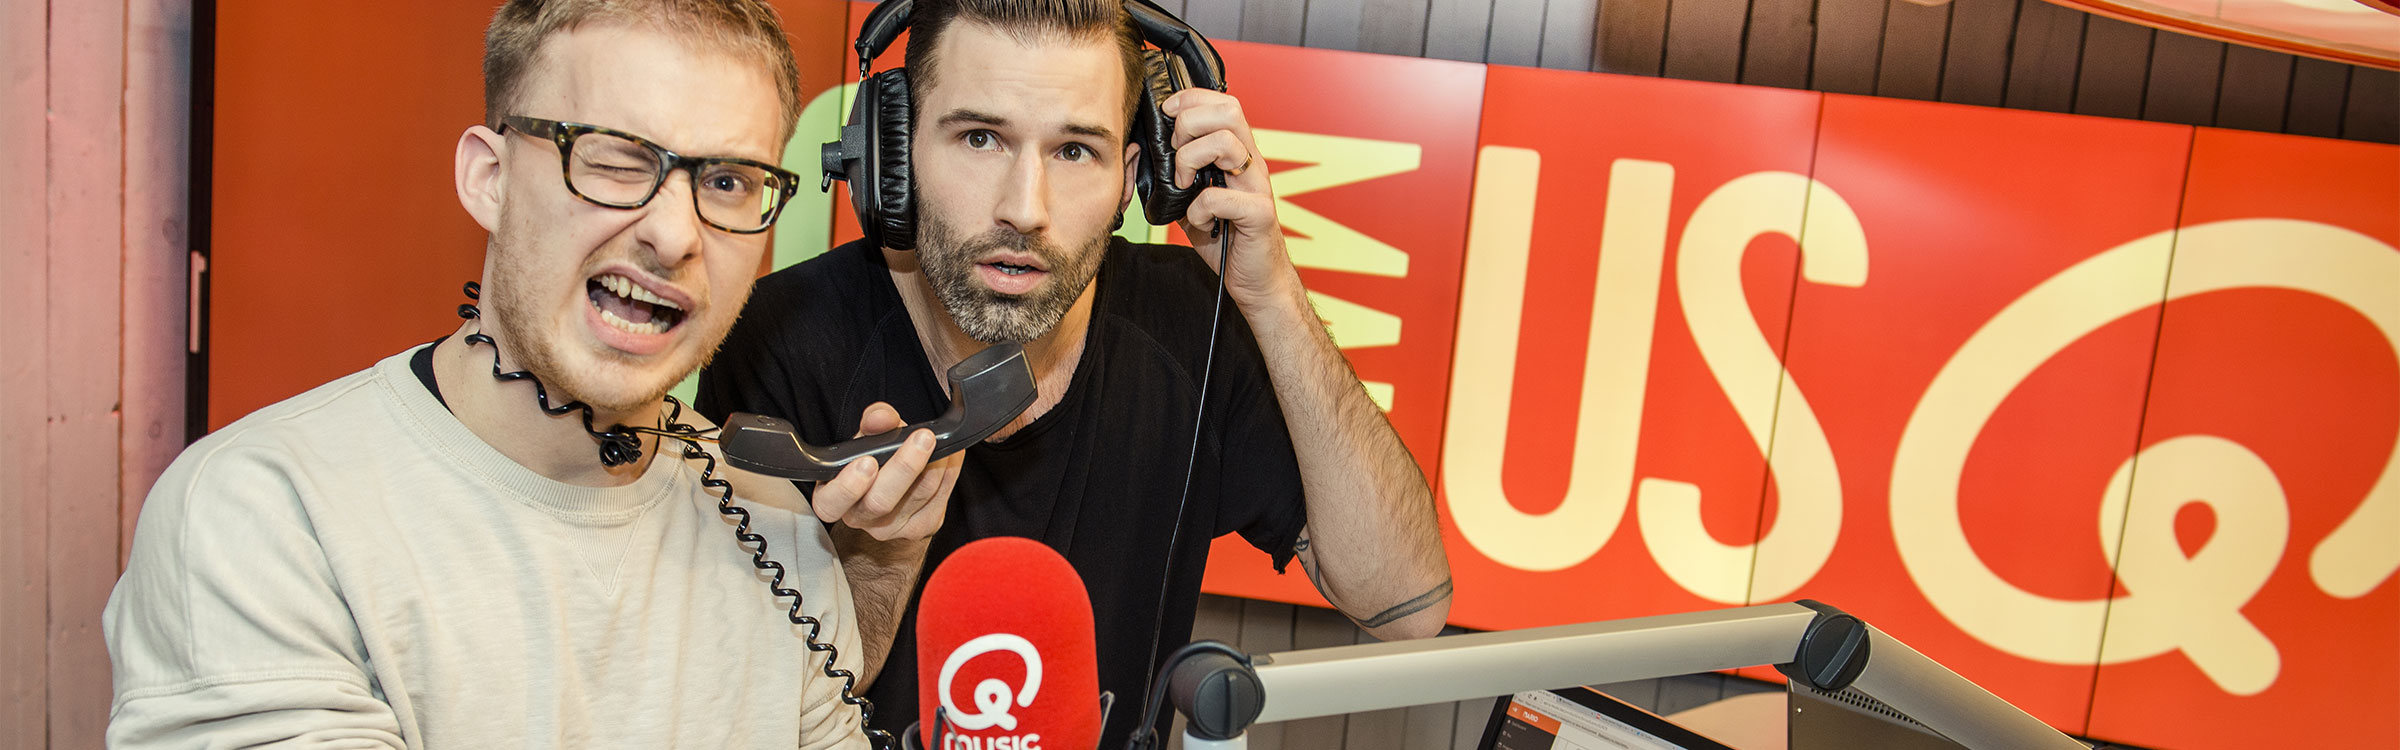 Qmusic16 thebsmnt johannes 01